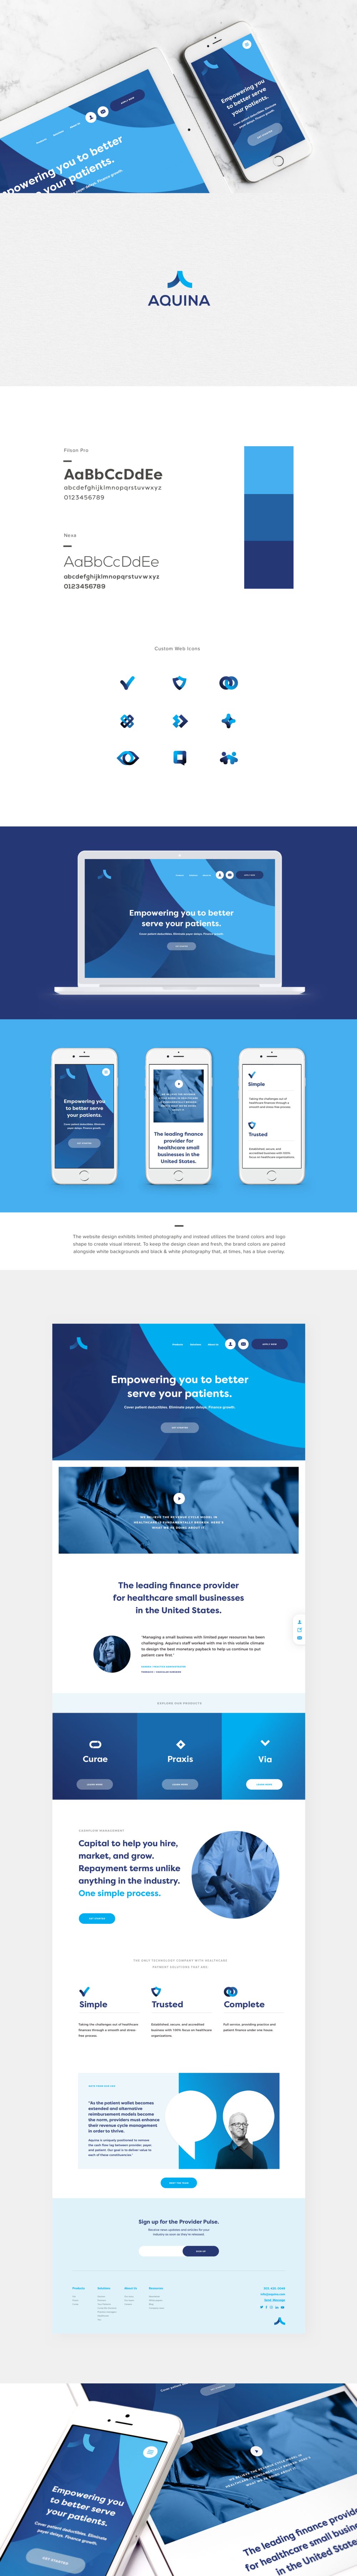 Aquina_Web and Identity Concepts.png